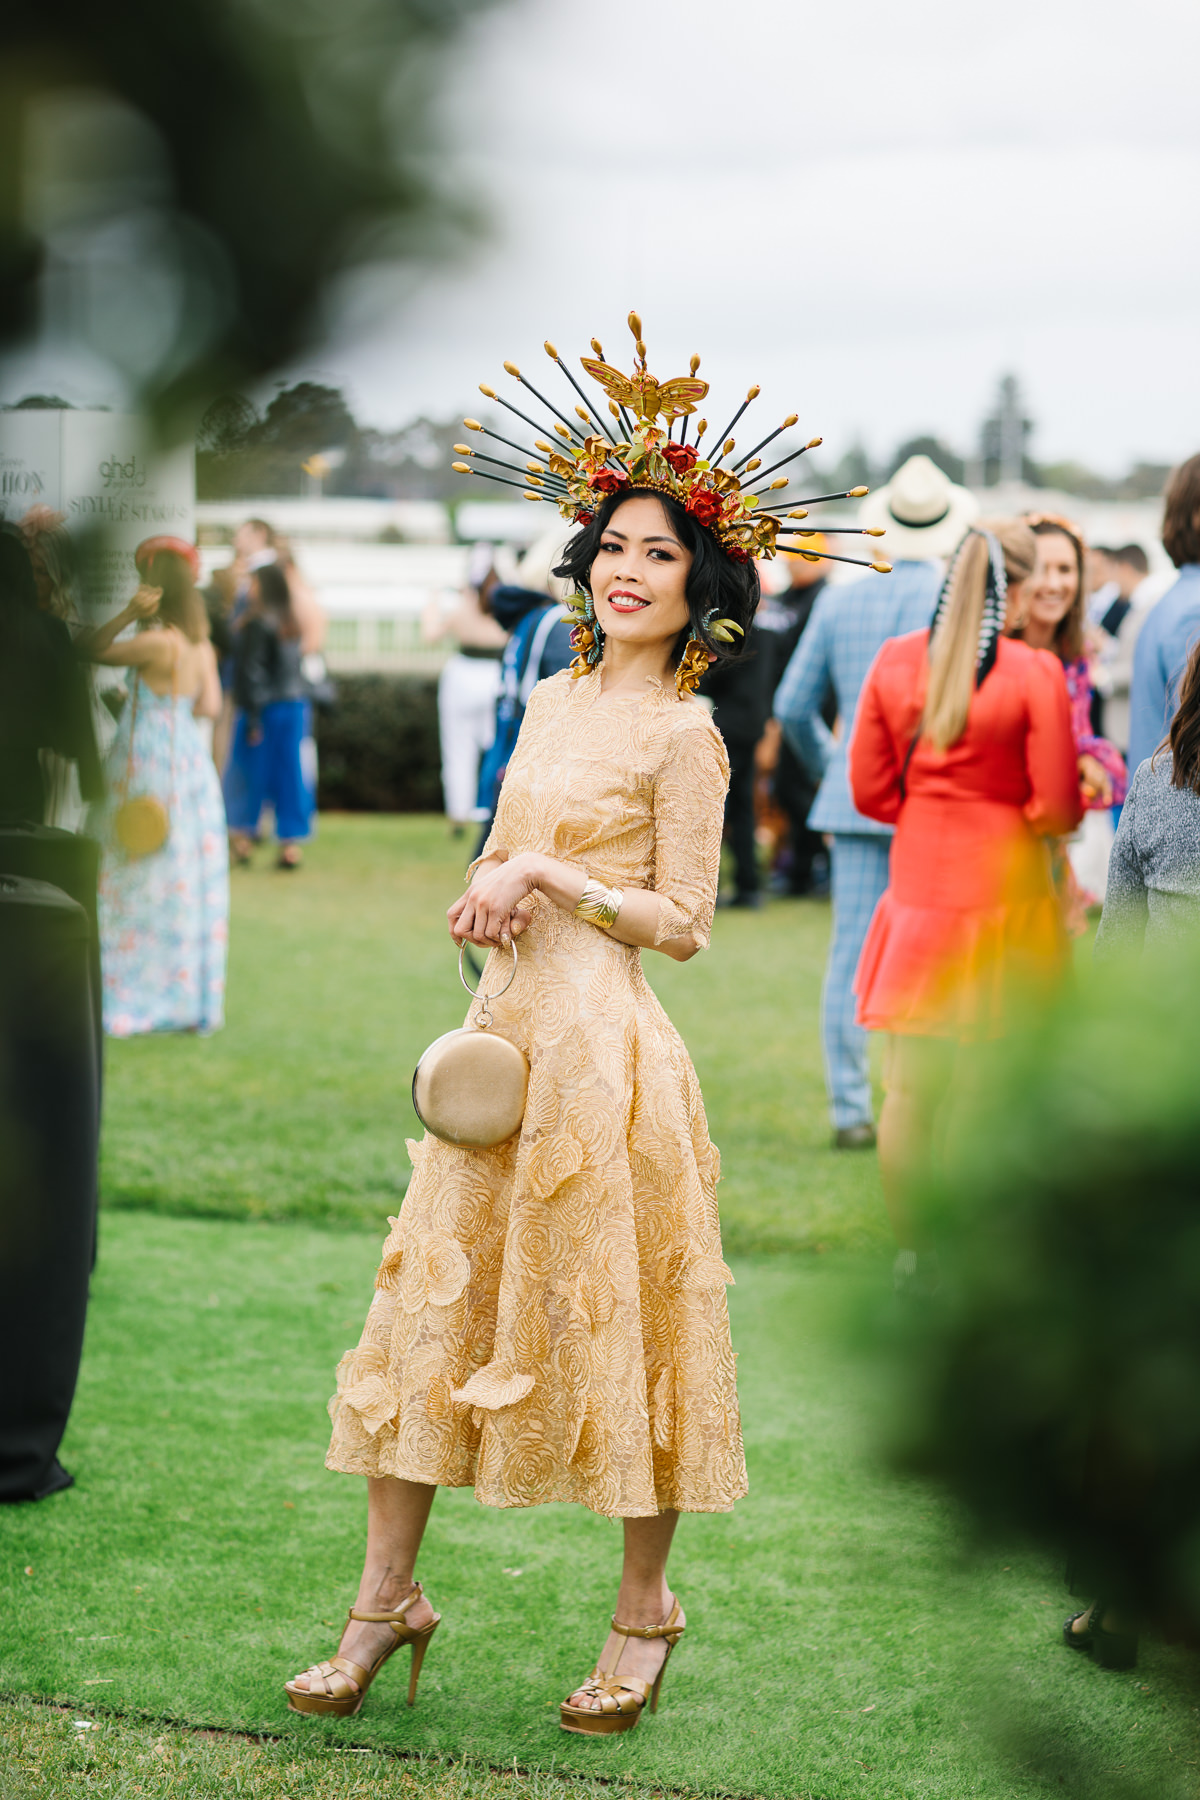 millinery at the races